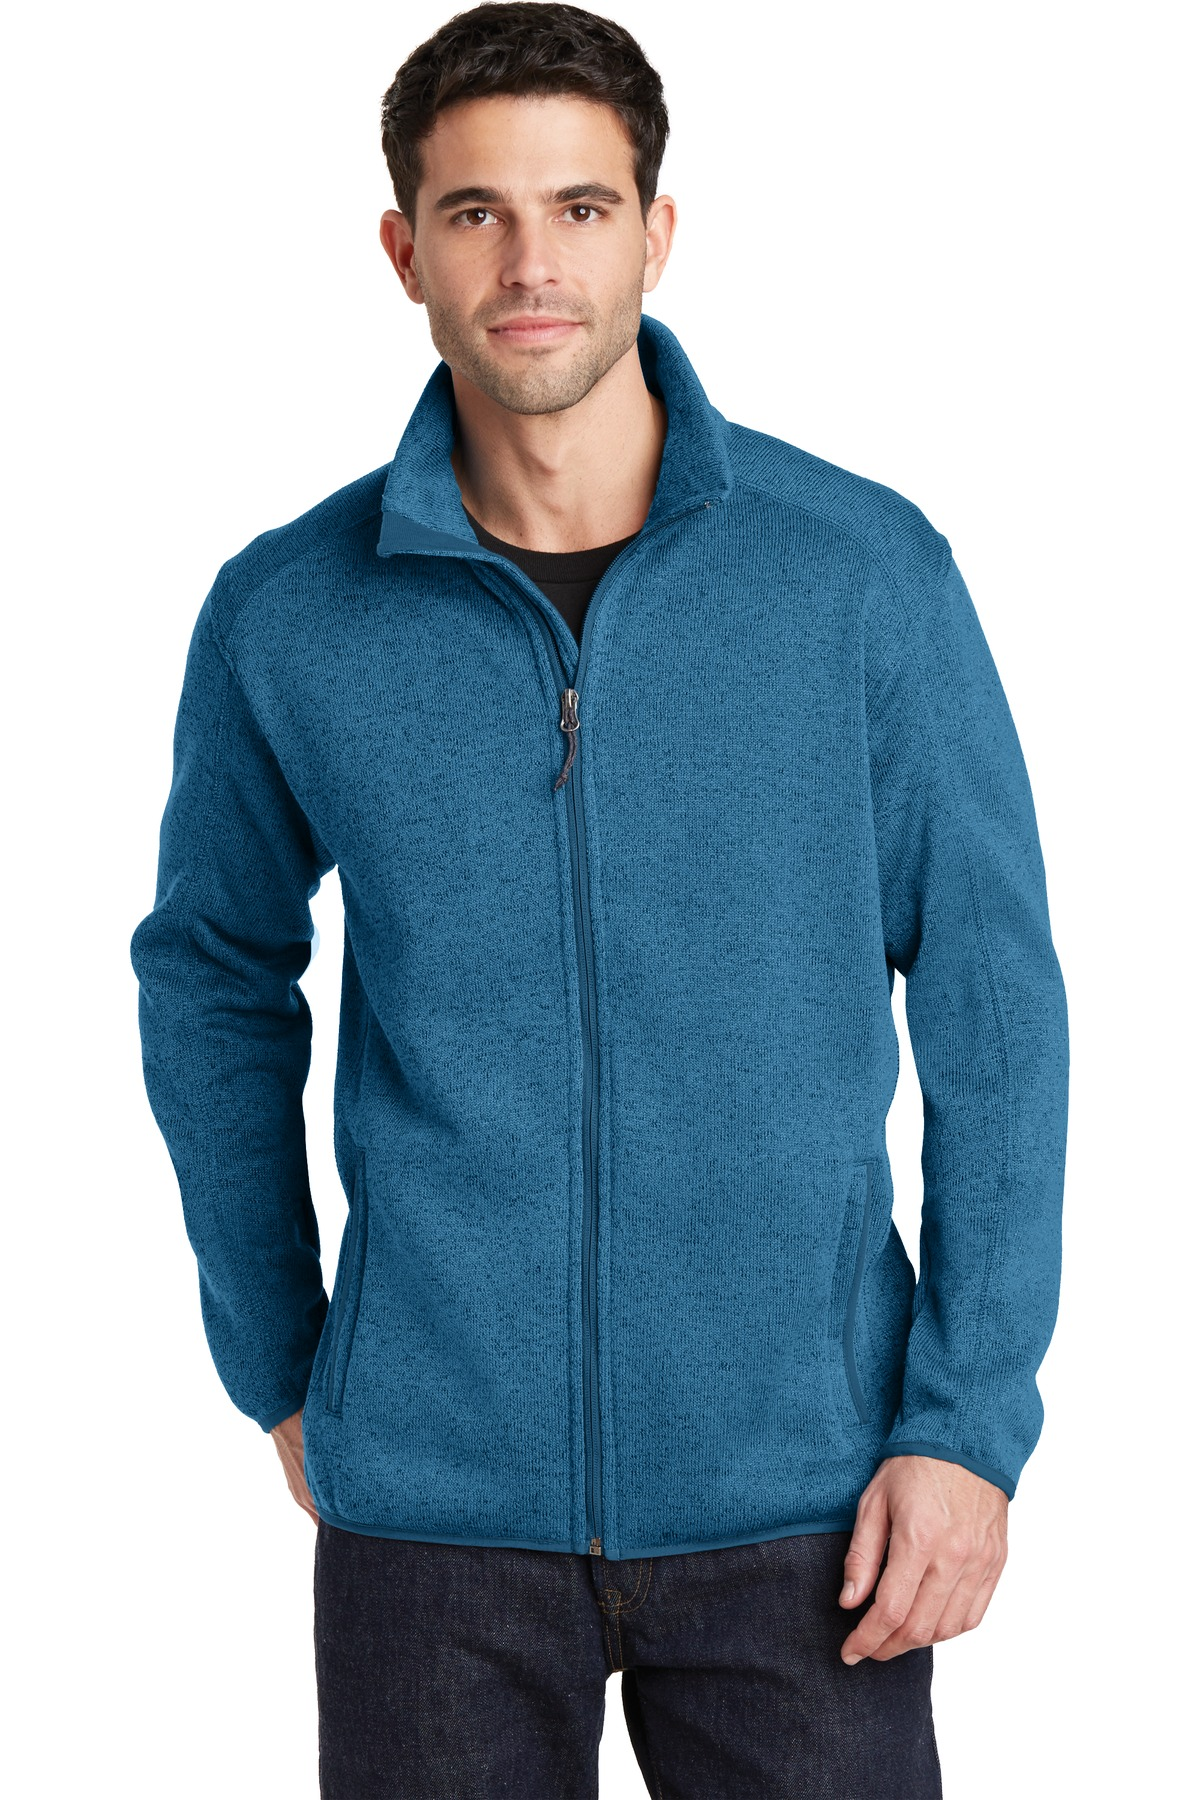 Port Authority  F232 - Sweater Fleece Jacket